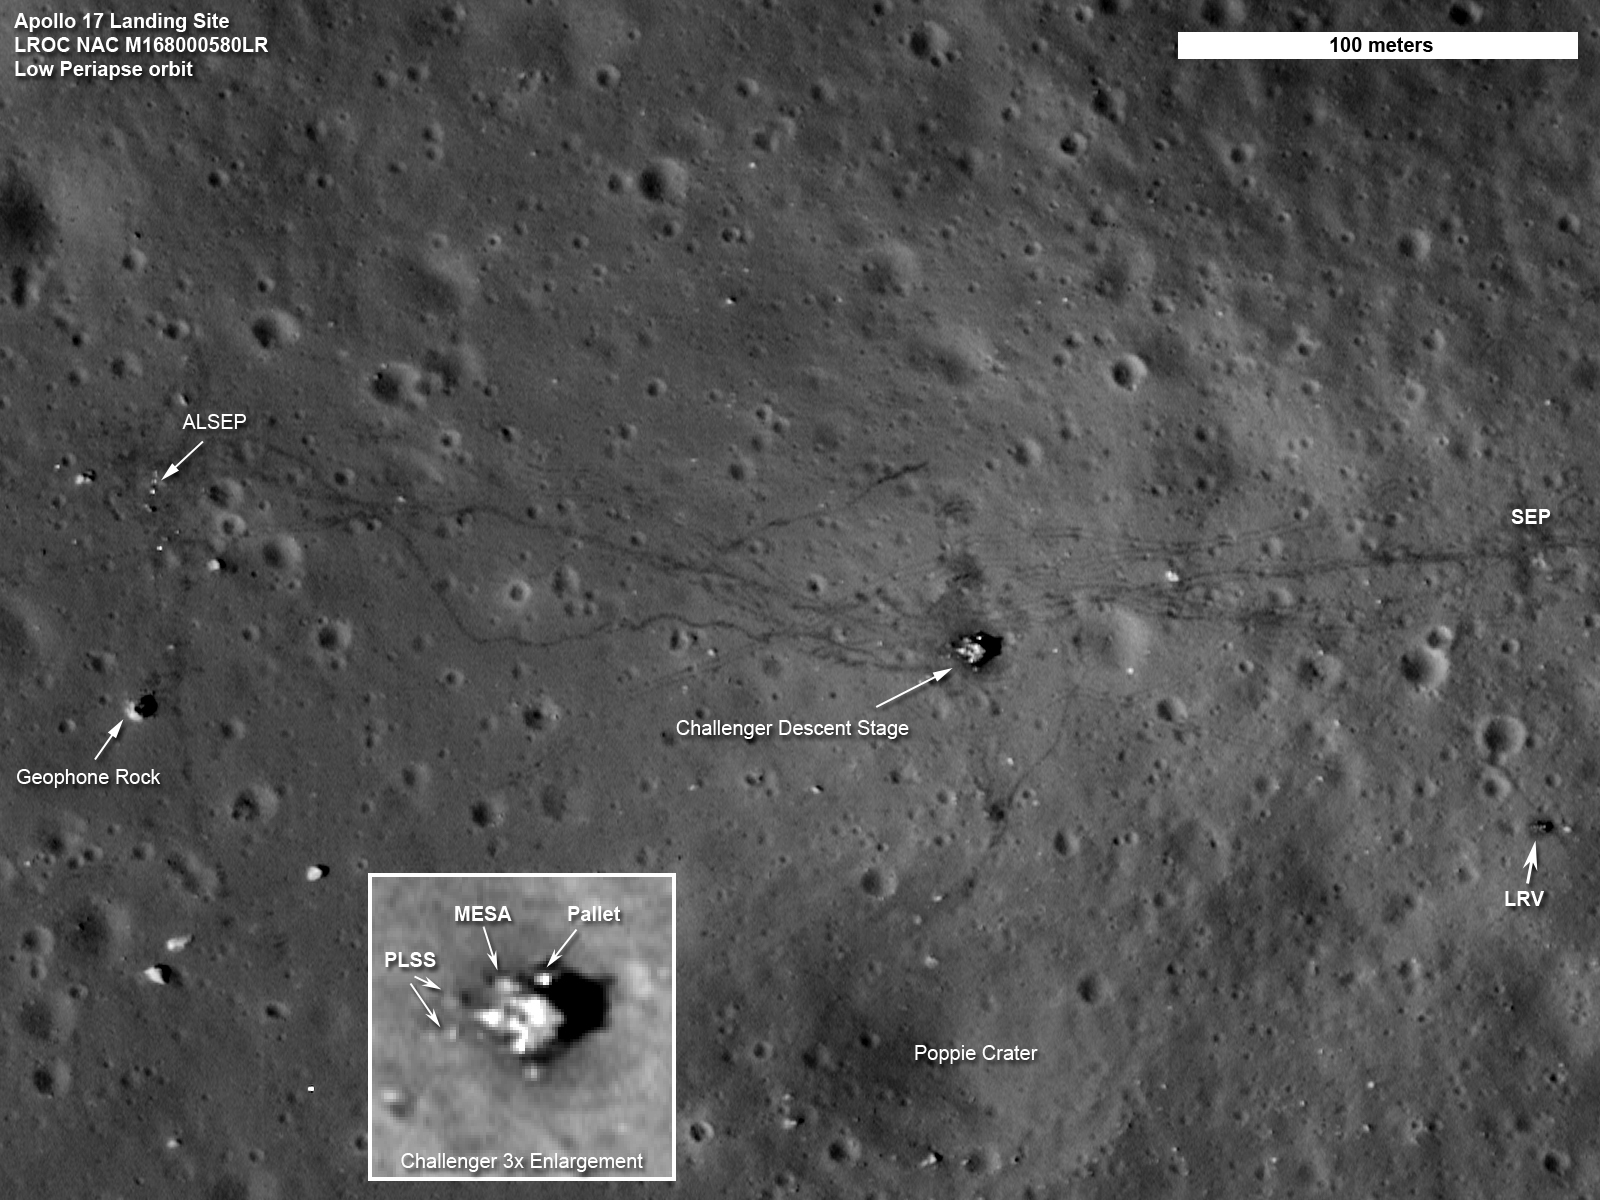 NASA Lunar Reconnaissance Orbiter image of Apollo landing sites